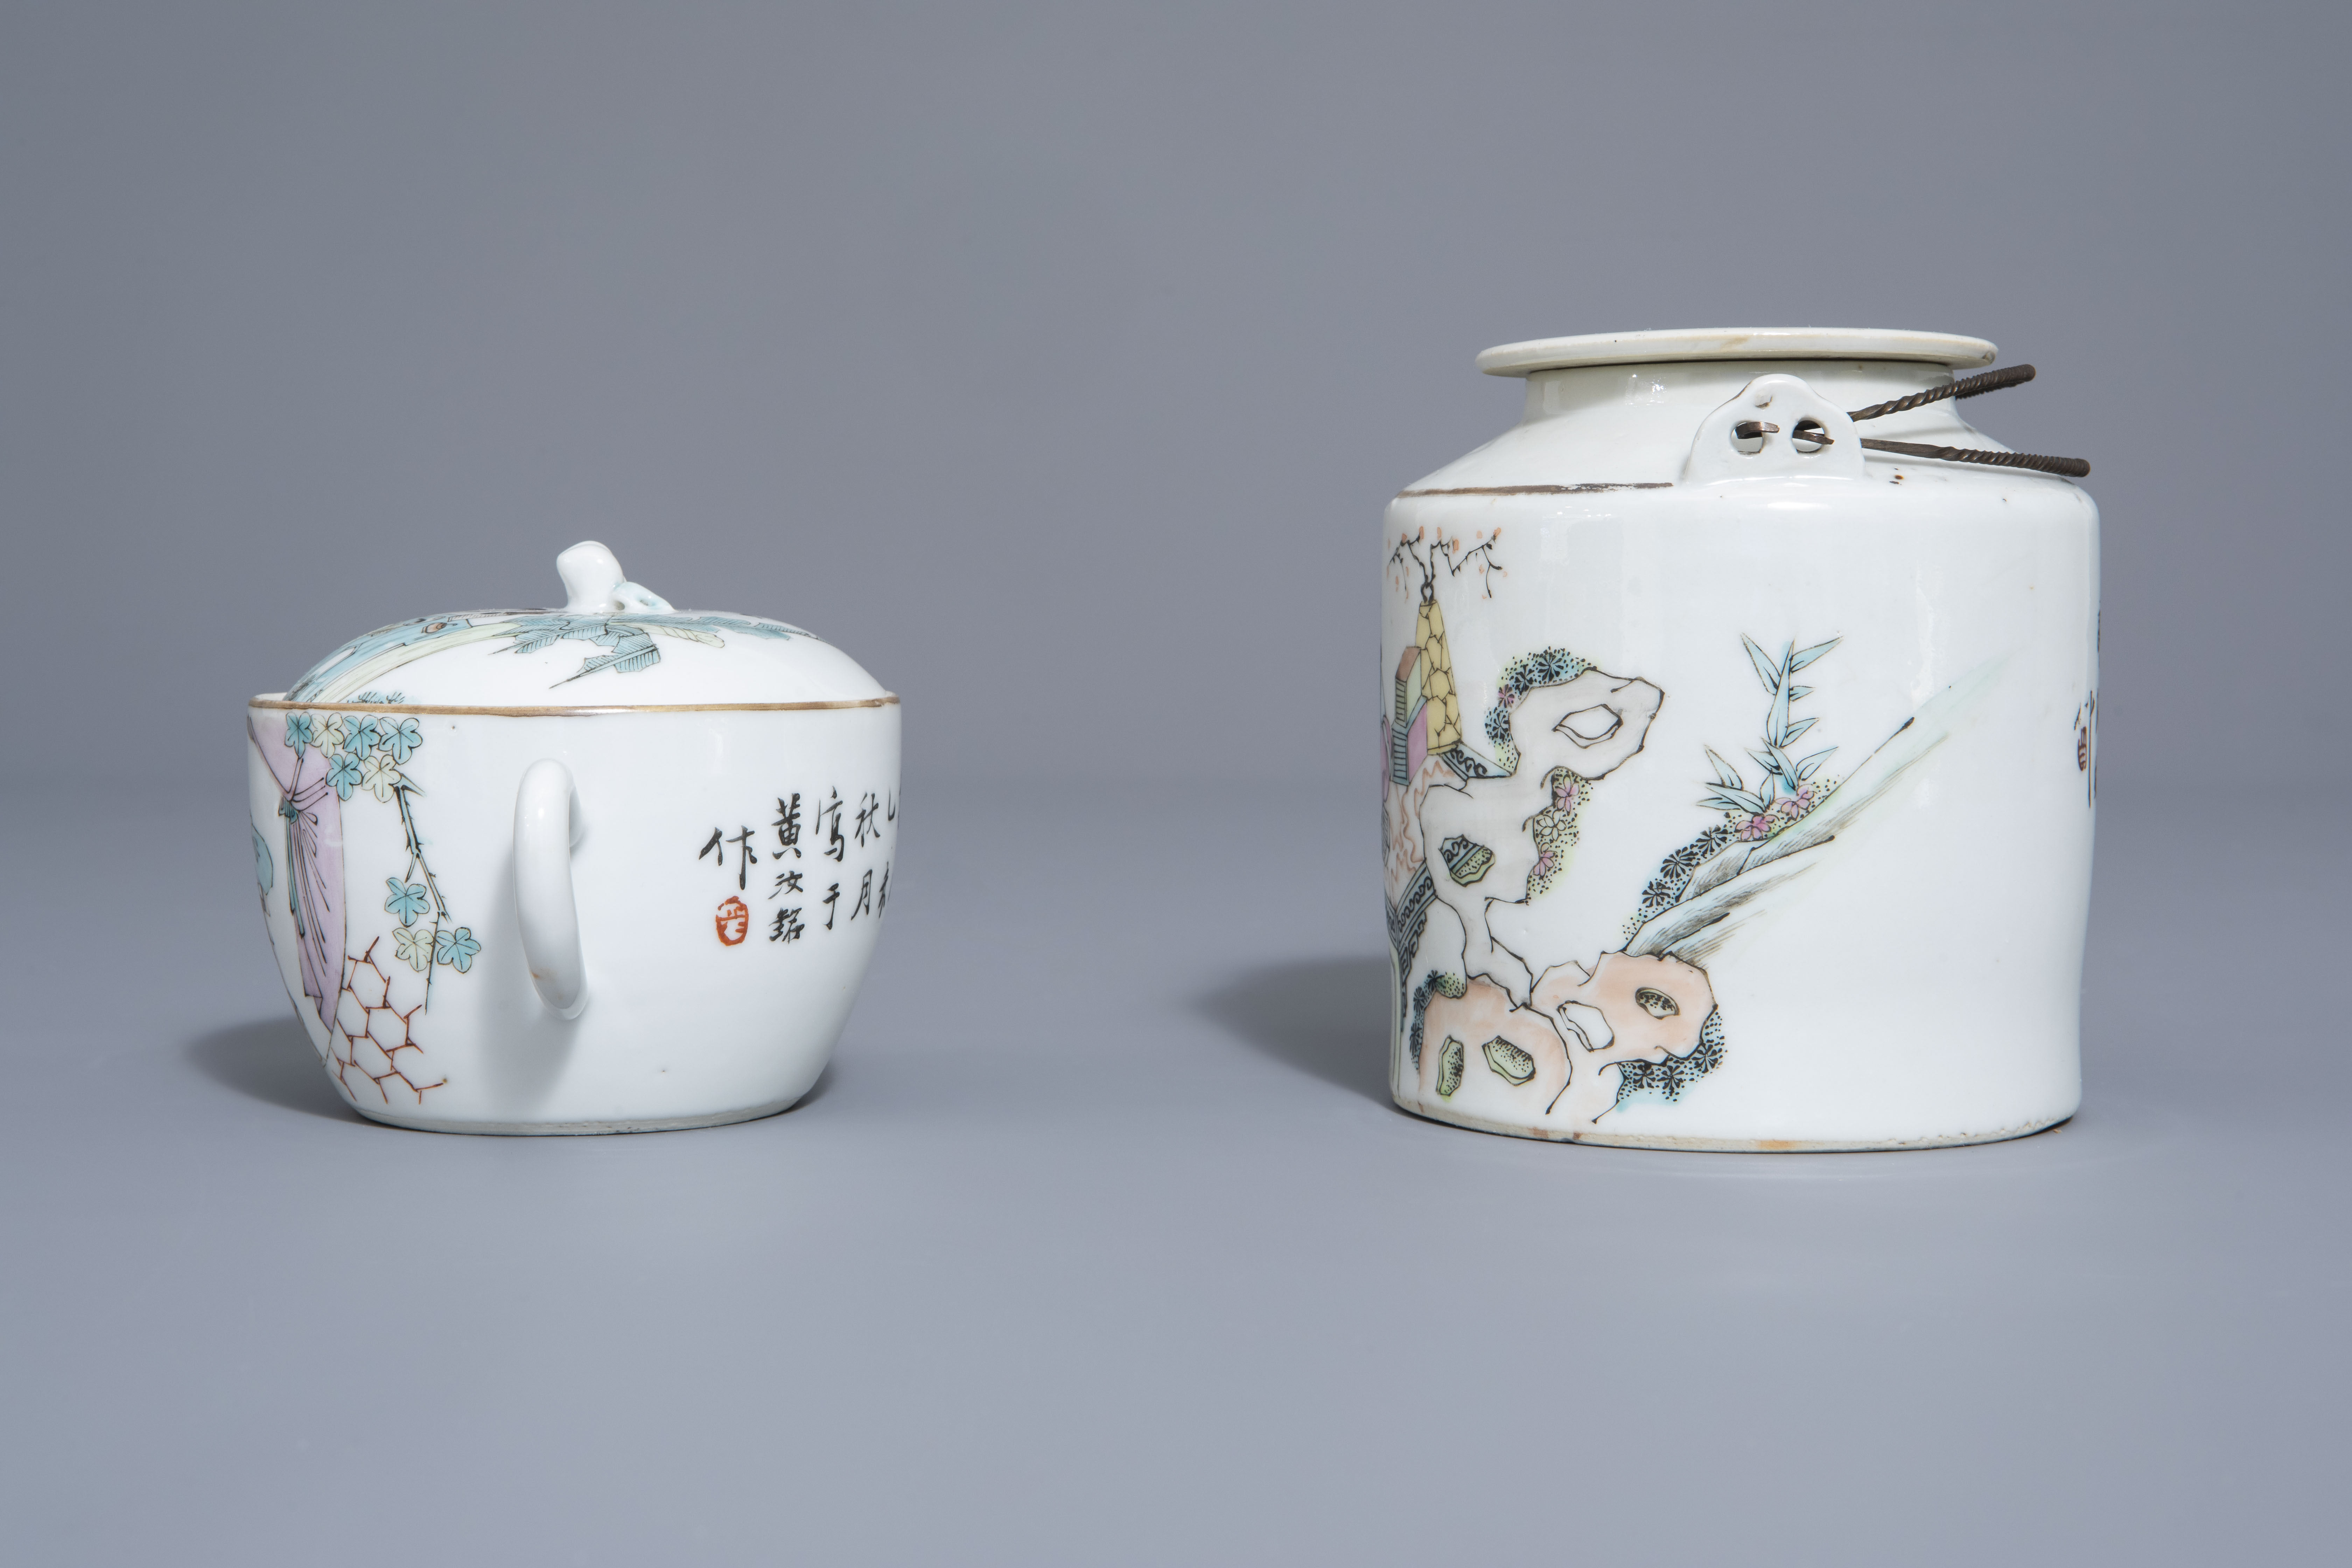 A Chinese seven-piece qianjiang cai tea service with figurative design, 19th/20th C. - Image 5 of 19